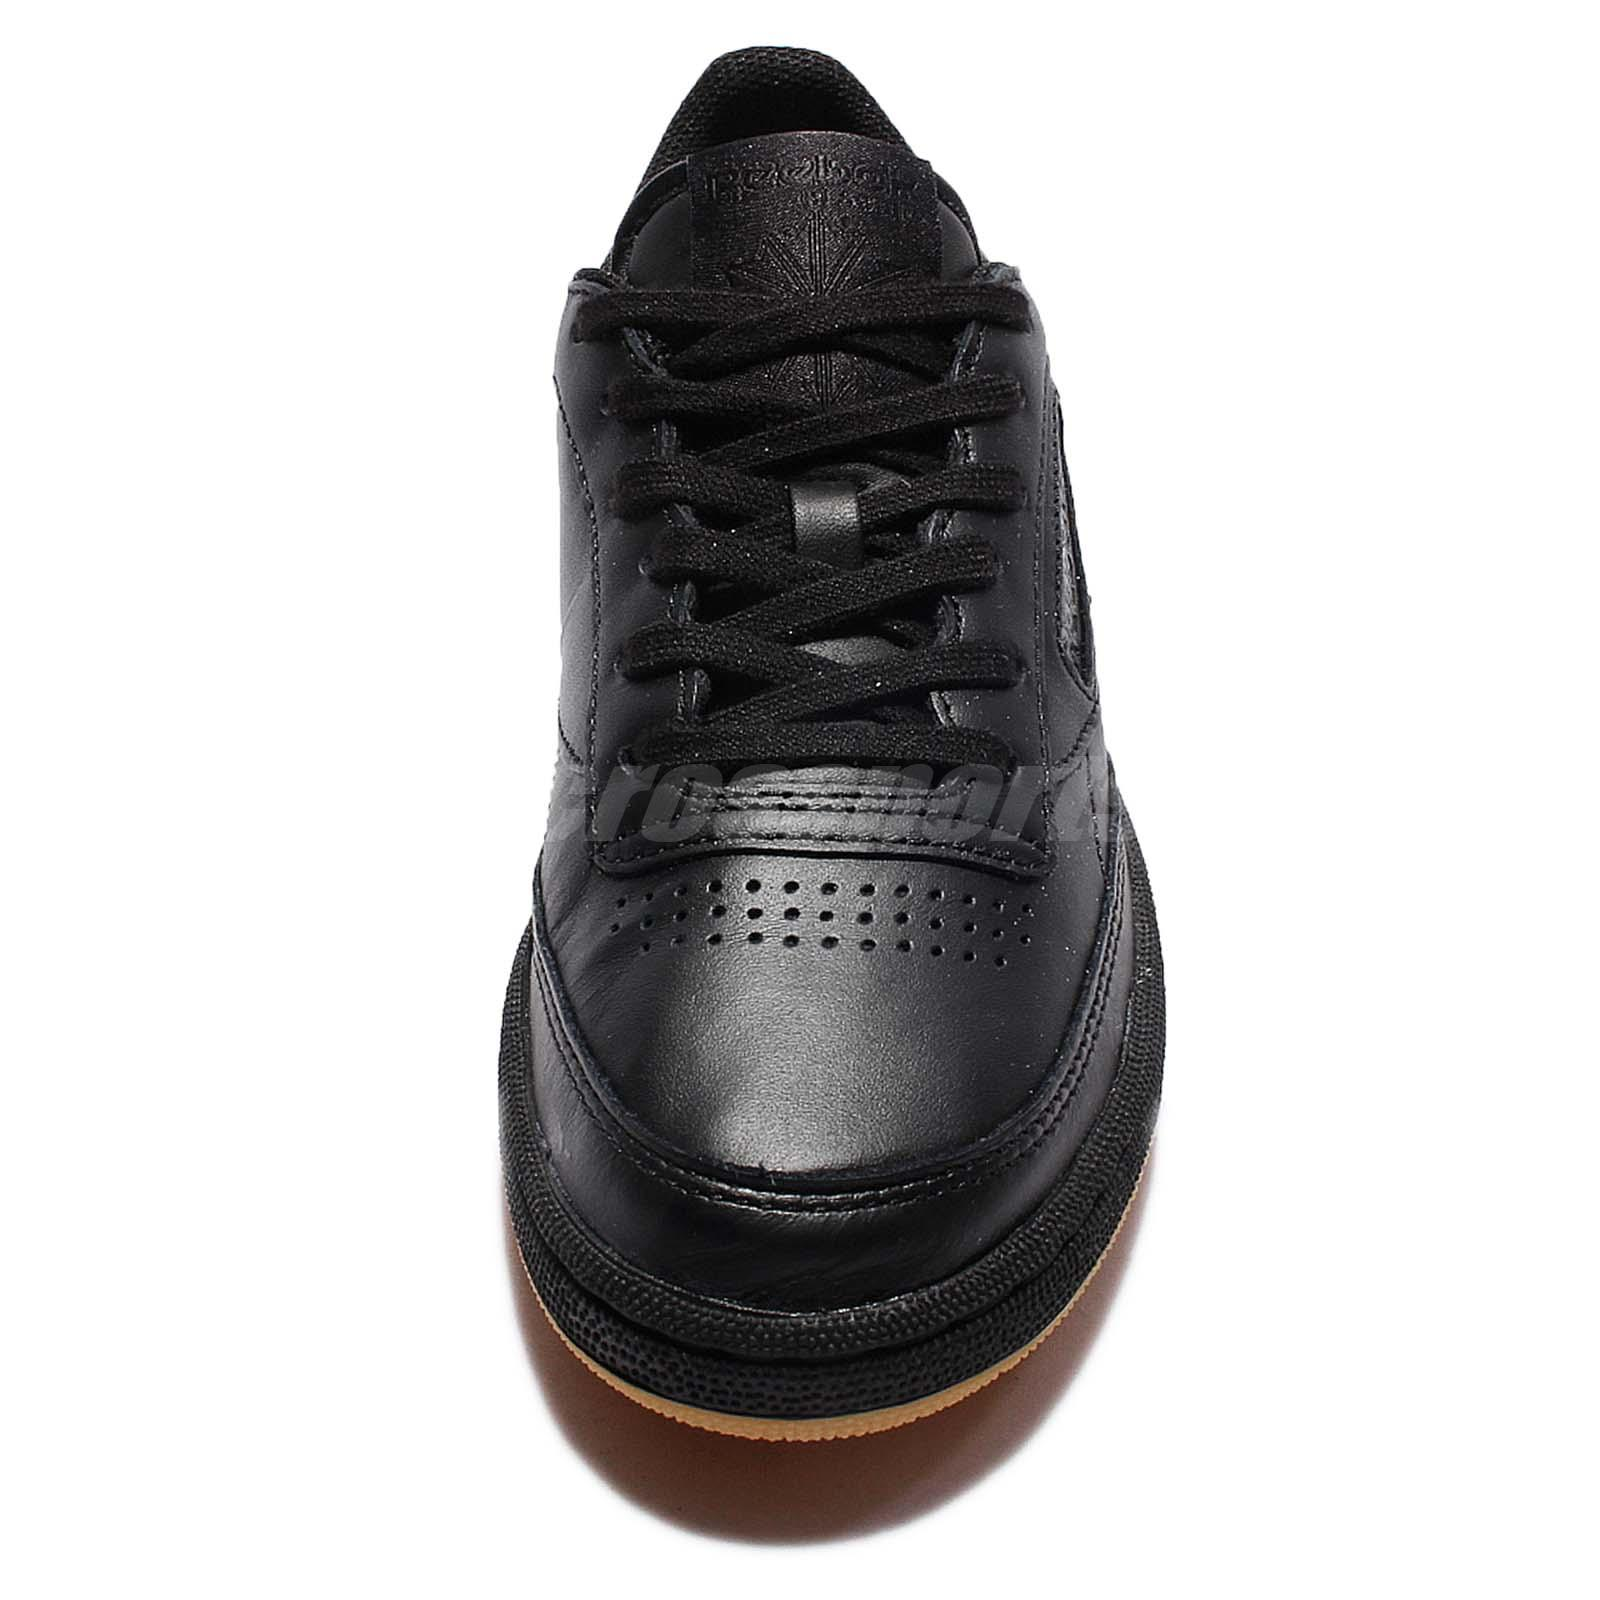 reebok formal shoes Online Shopping for